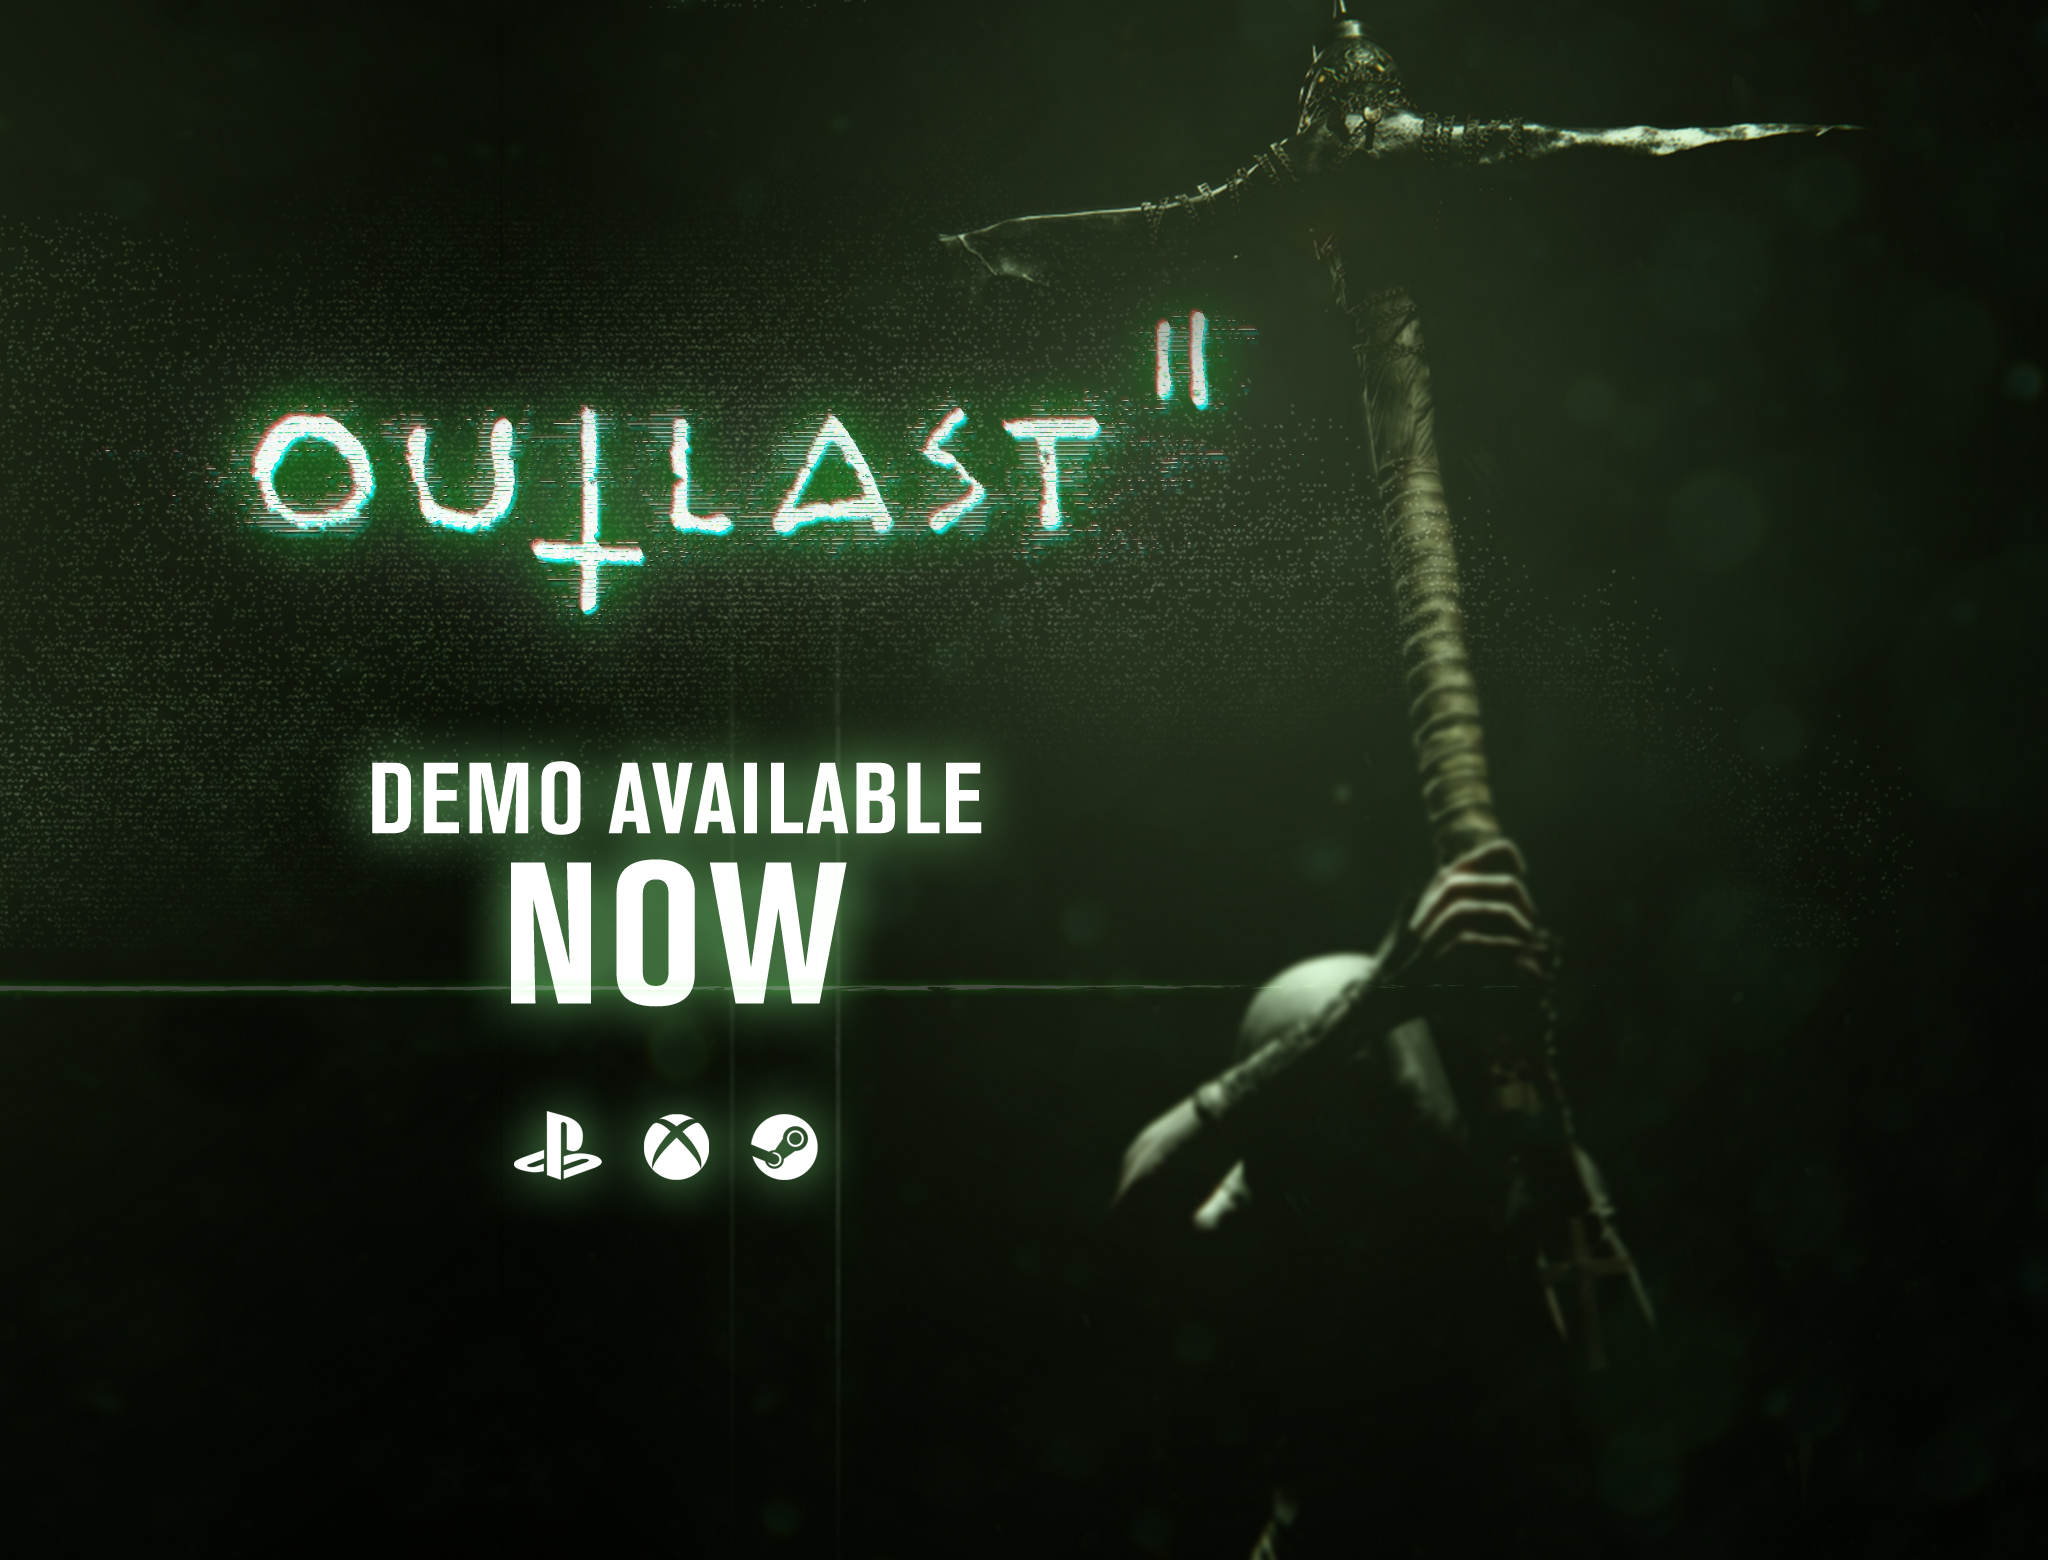 outlast demo